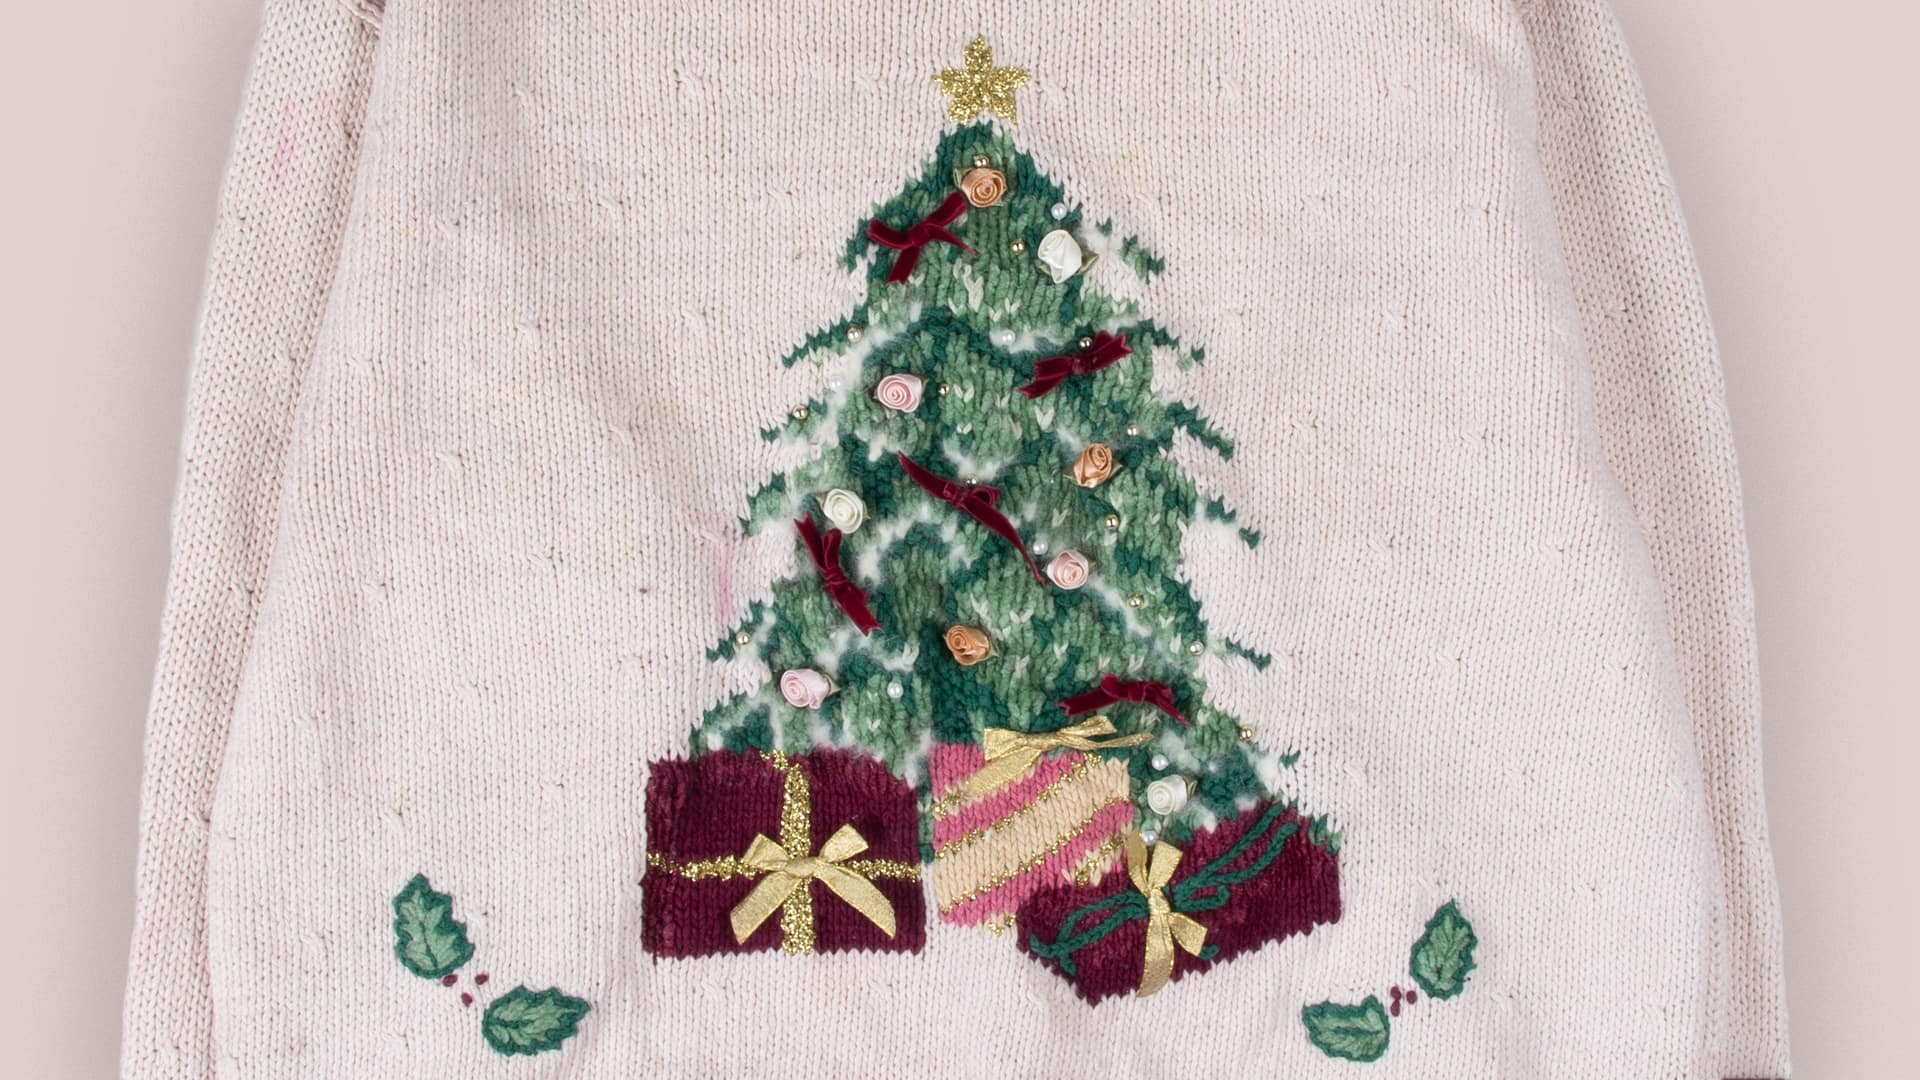 Ugly Christmas sweater featuring a Christmas tree adorned with fabric roses with presents all around it